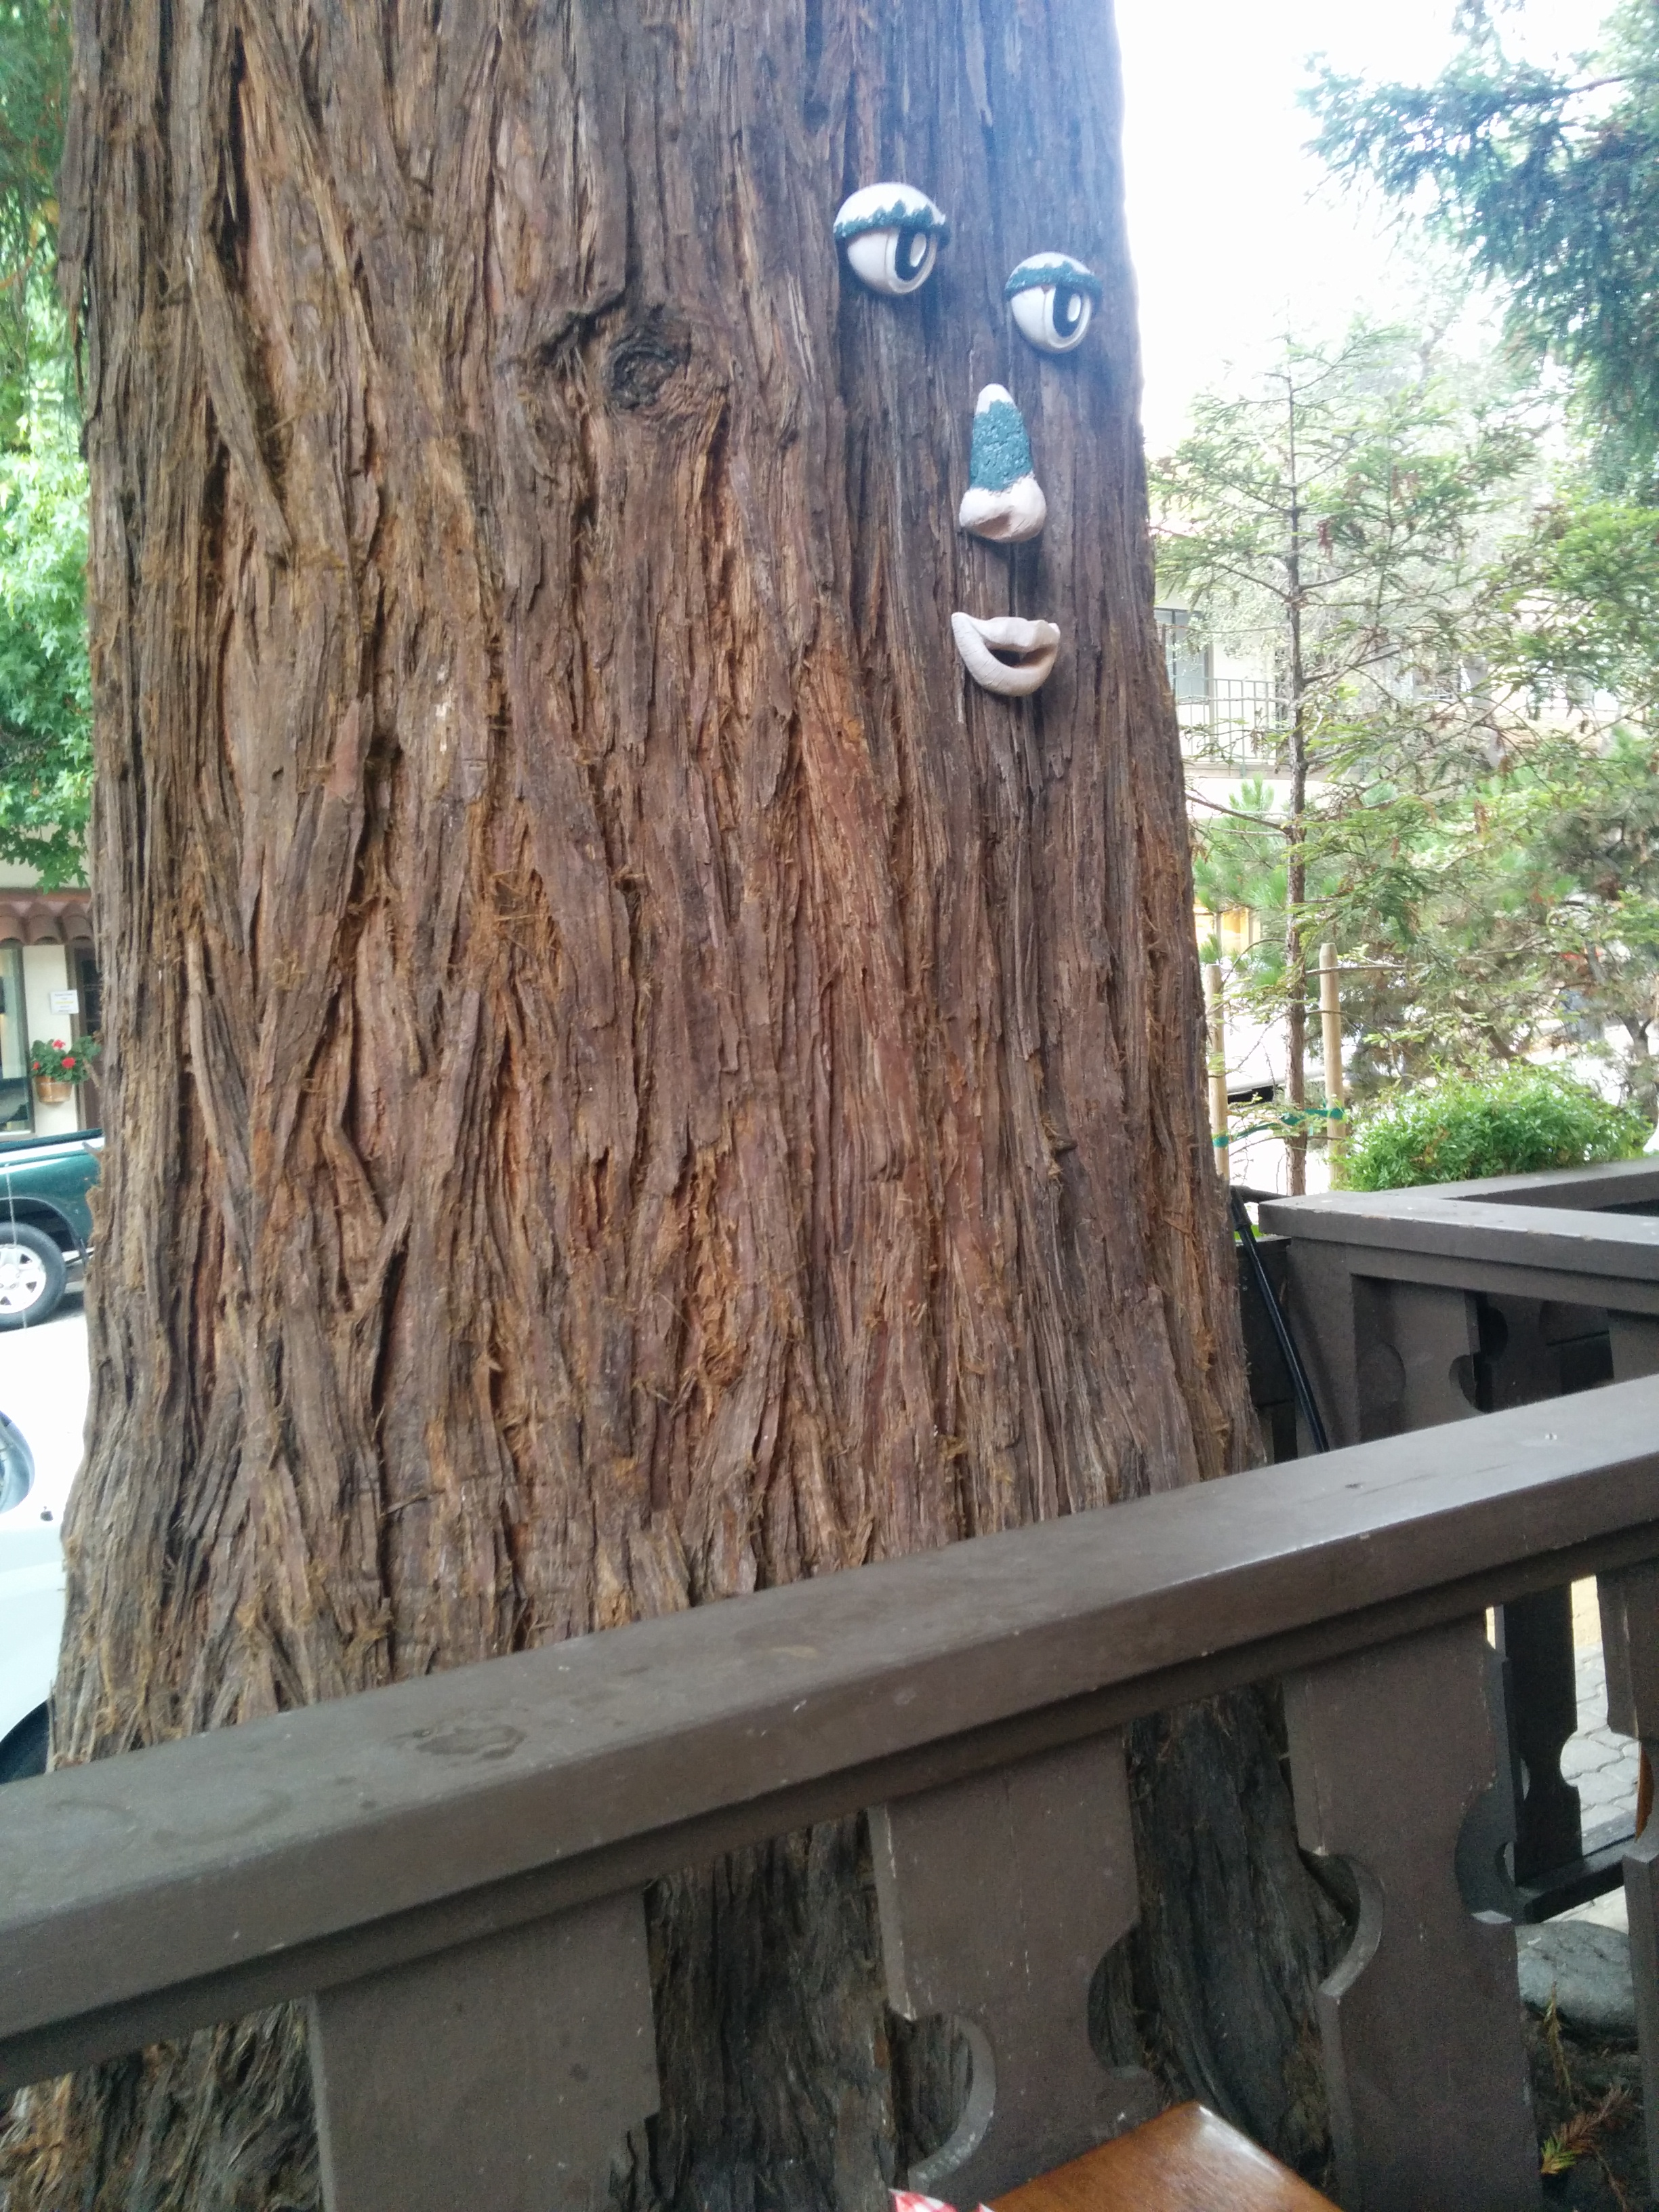 Tree with face